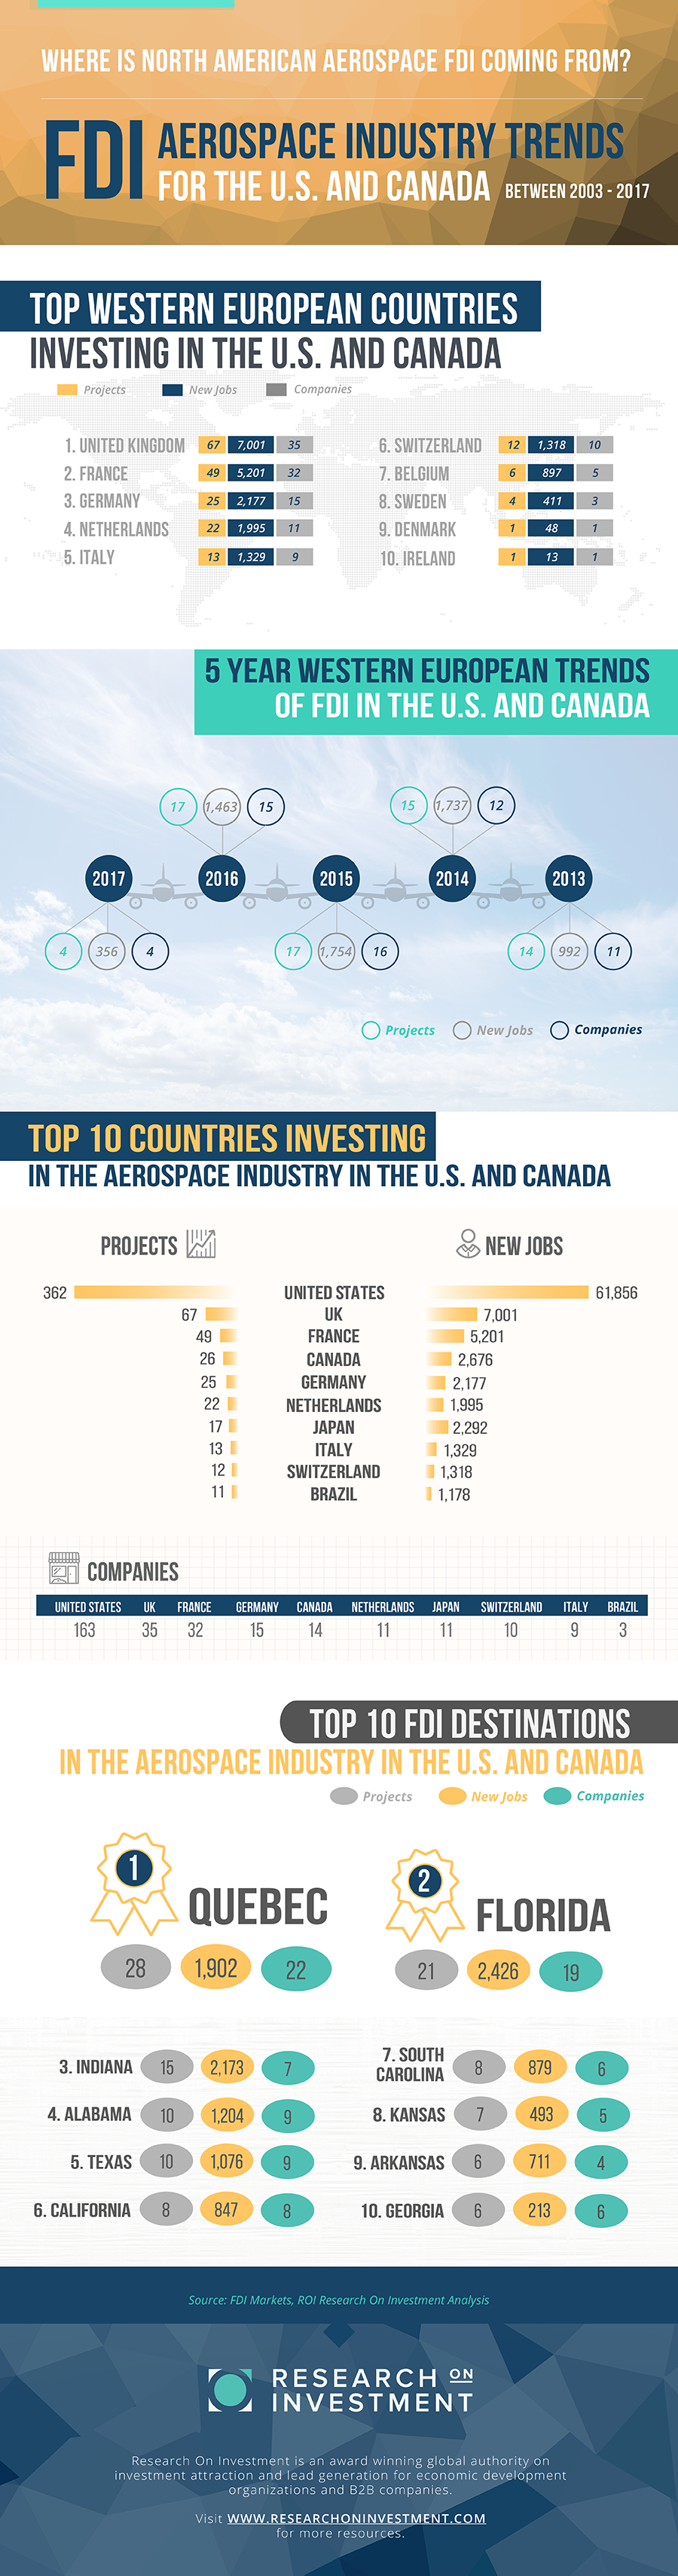 FDI AEROSPACE INDUSTRY TRENDS FOR THE U.S. AND CANADA Infographic